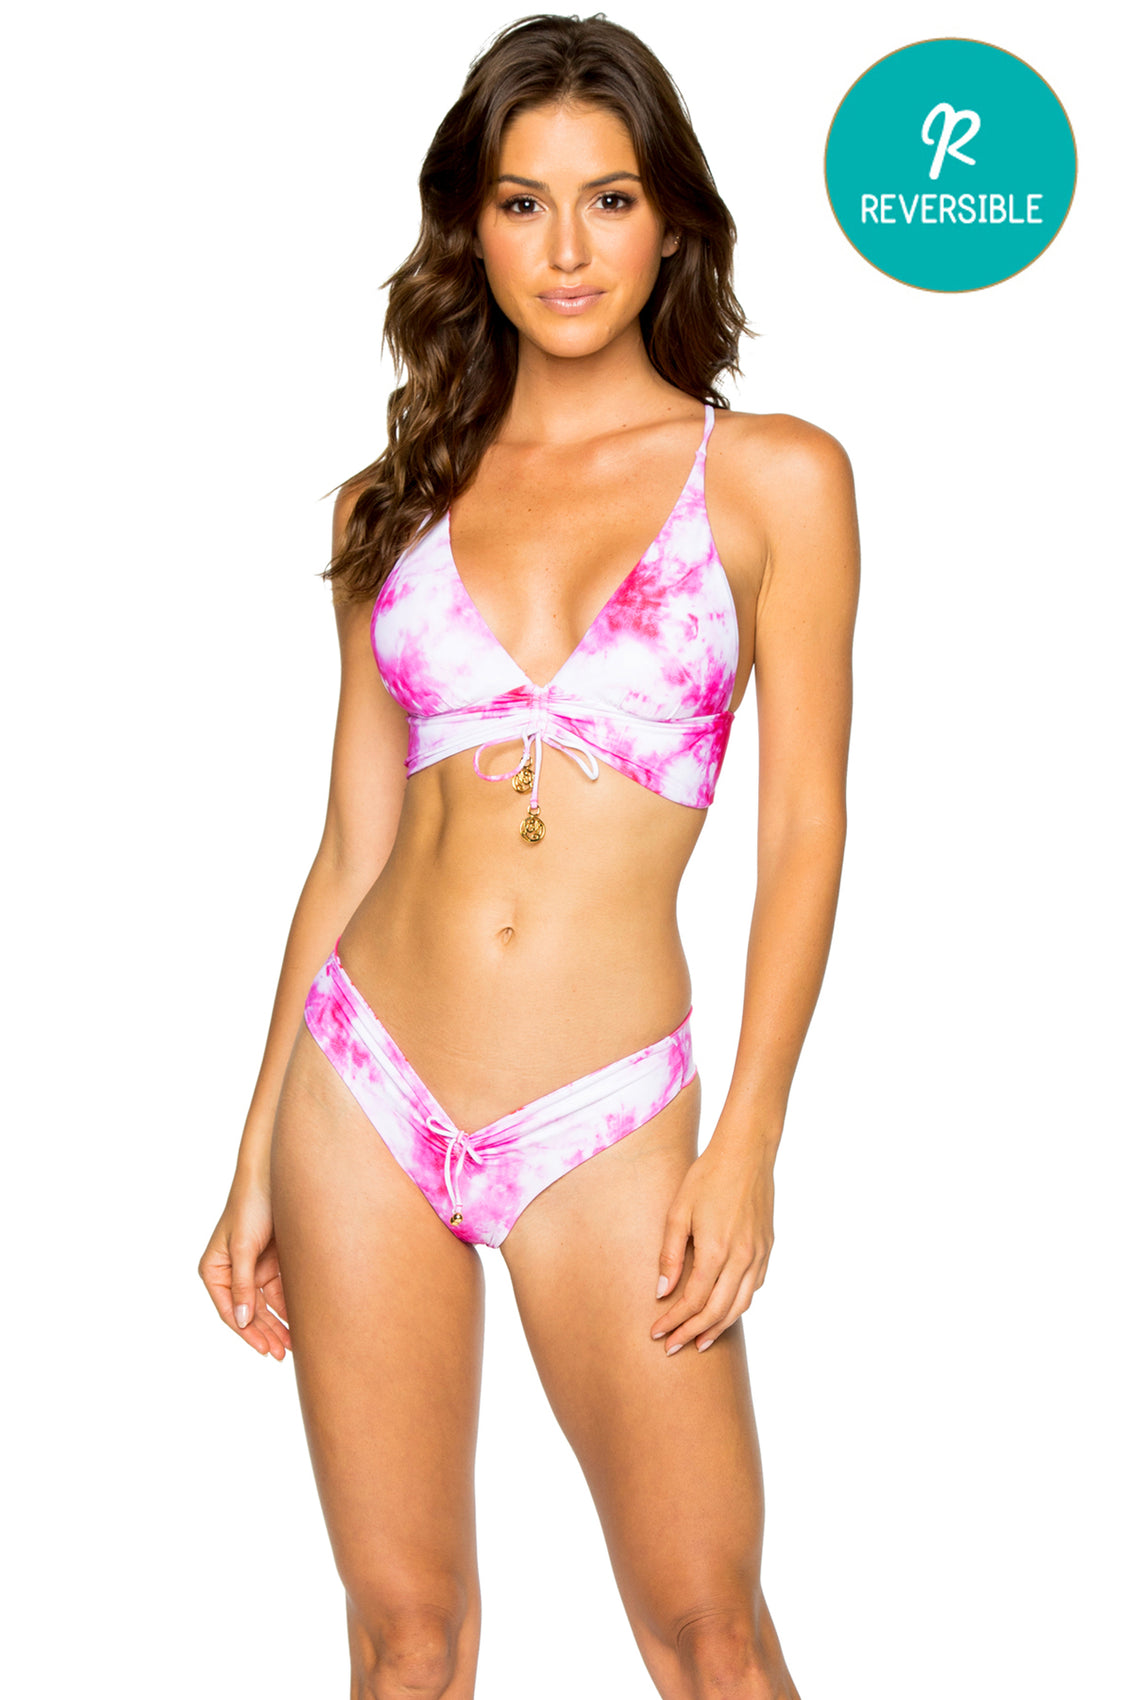 BAMBOLEO - Drawstring Halter Top & Drawstring Ruched Brazilian Bottom • Fuchsia